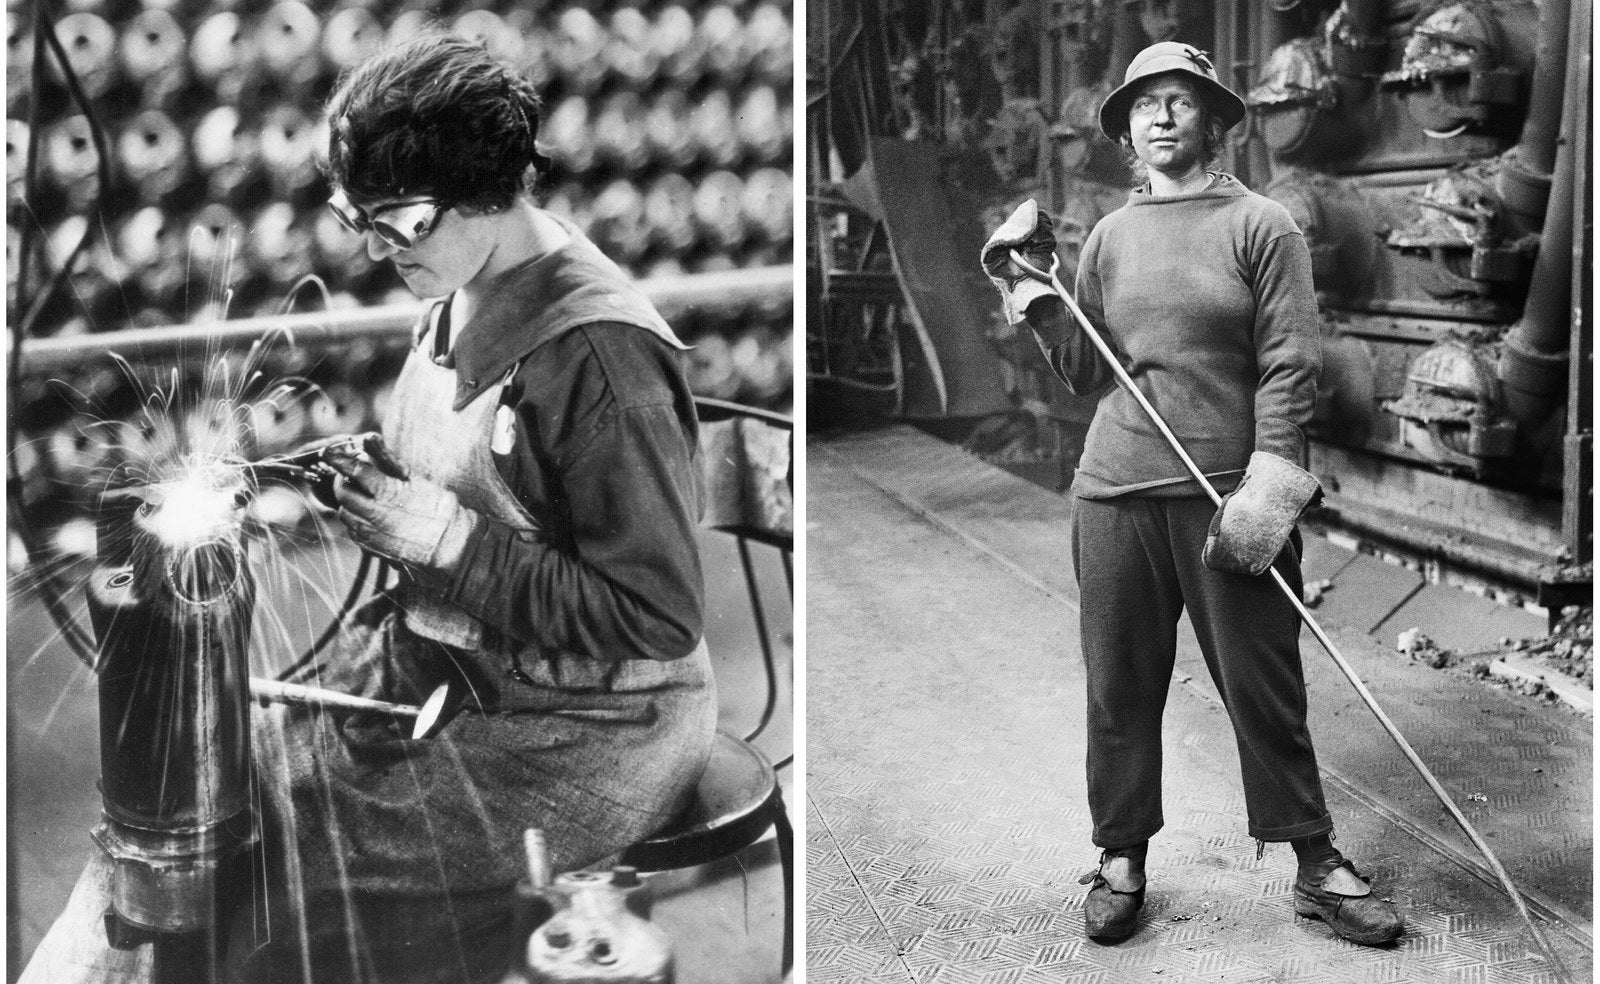 Left: A worker at an American munitions factory, circa 1918. Right: A war worker stands in front of the furnaces at the South Metropolitan Gas Company in London, 1918.